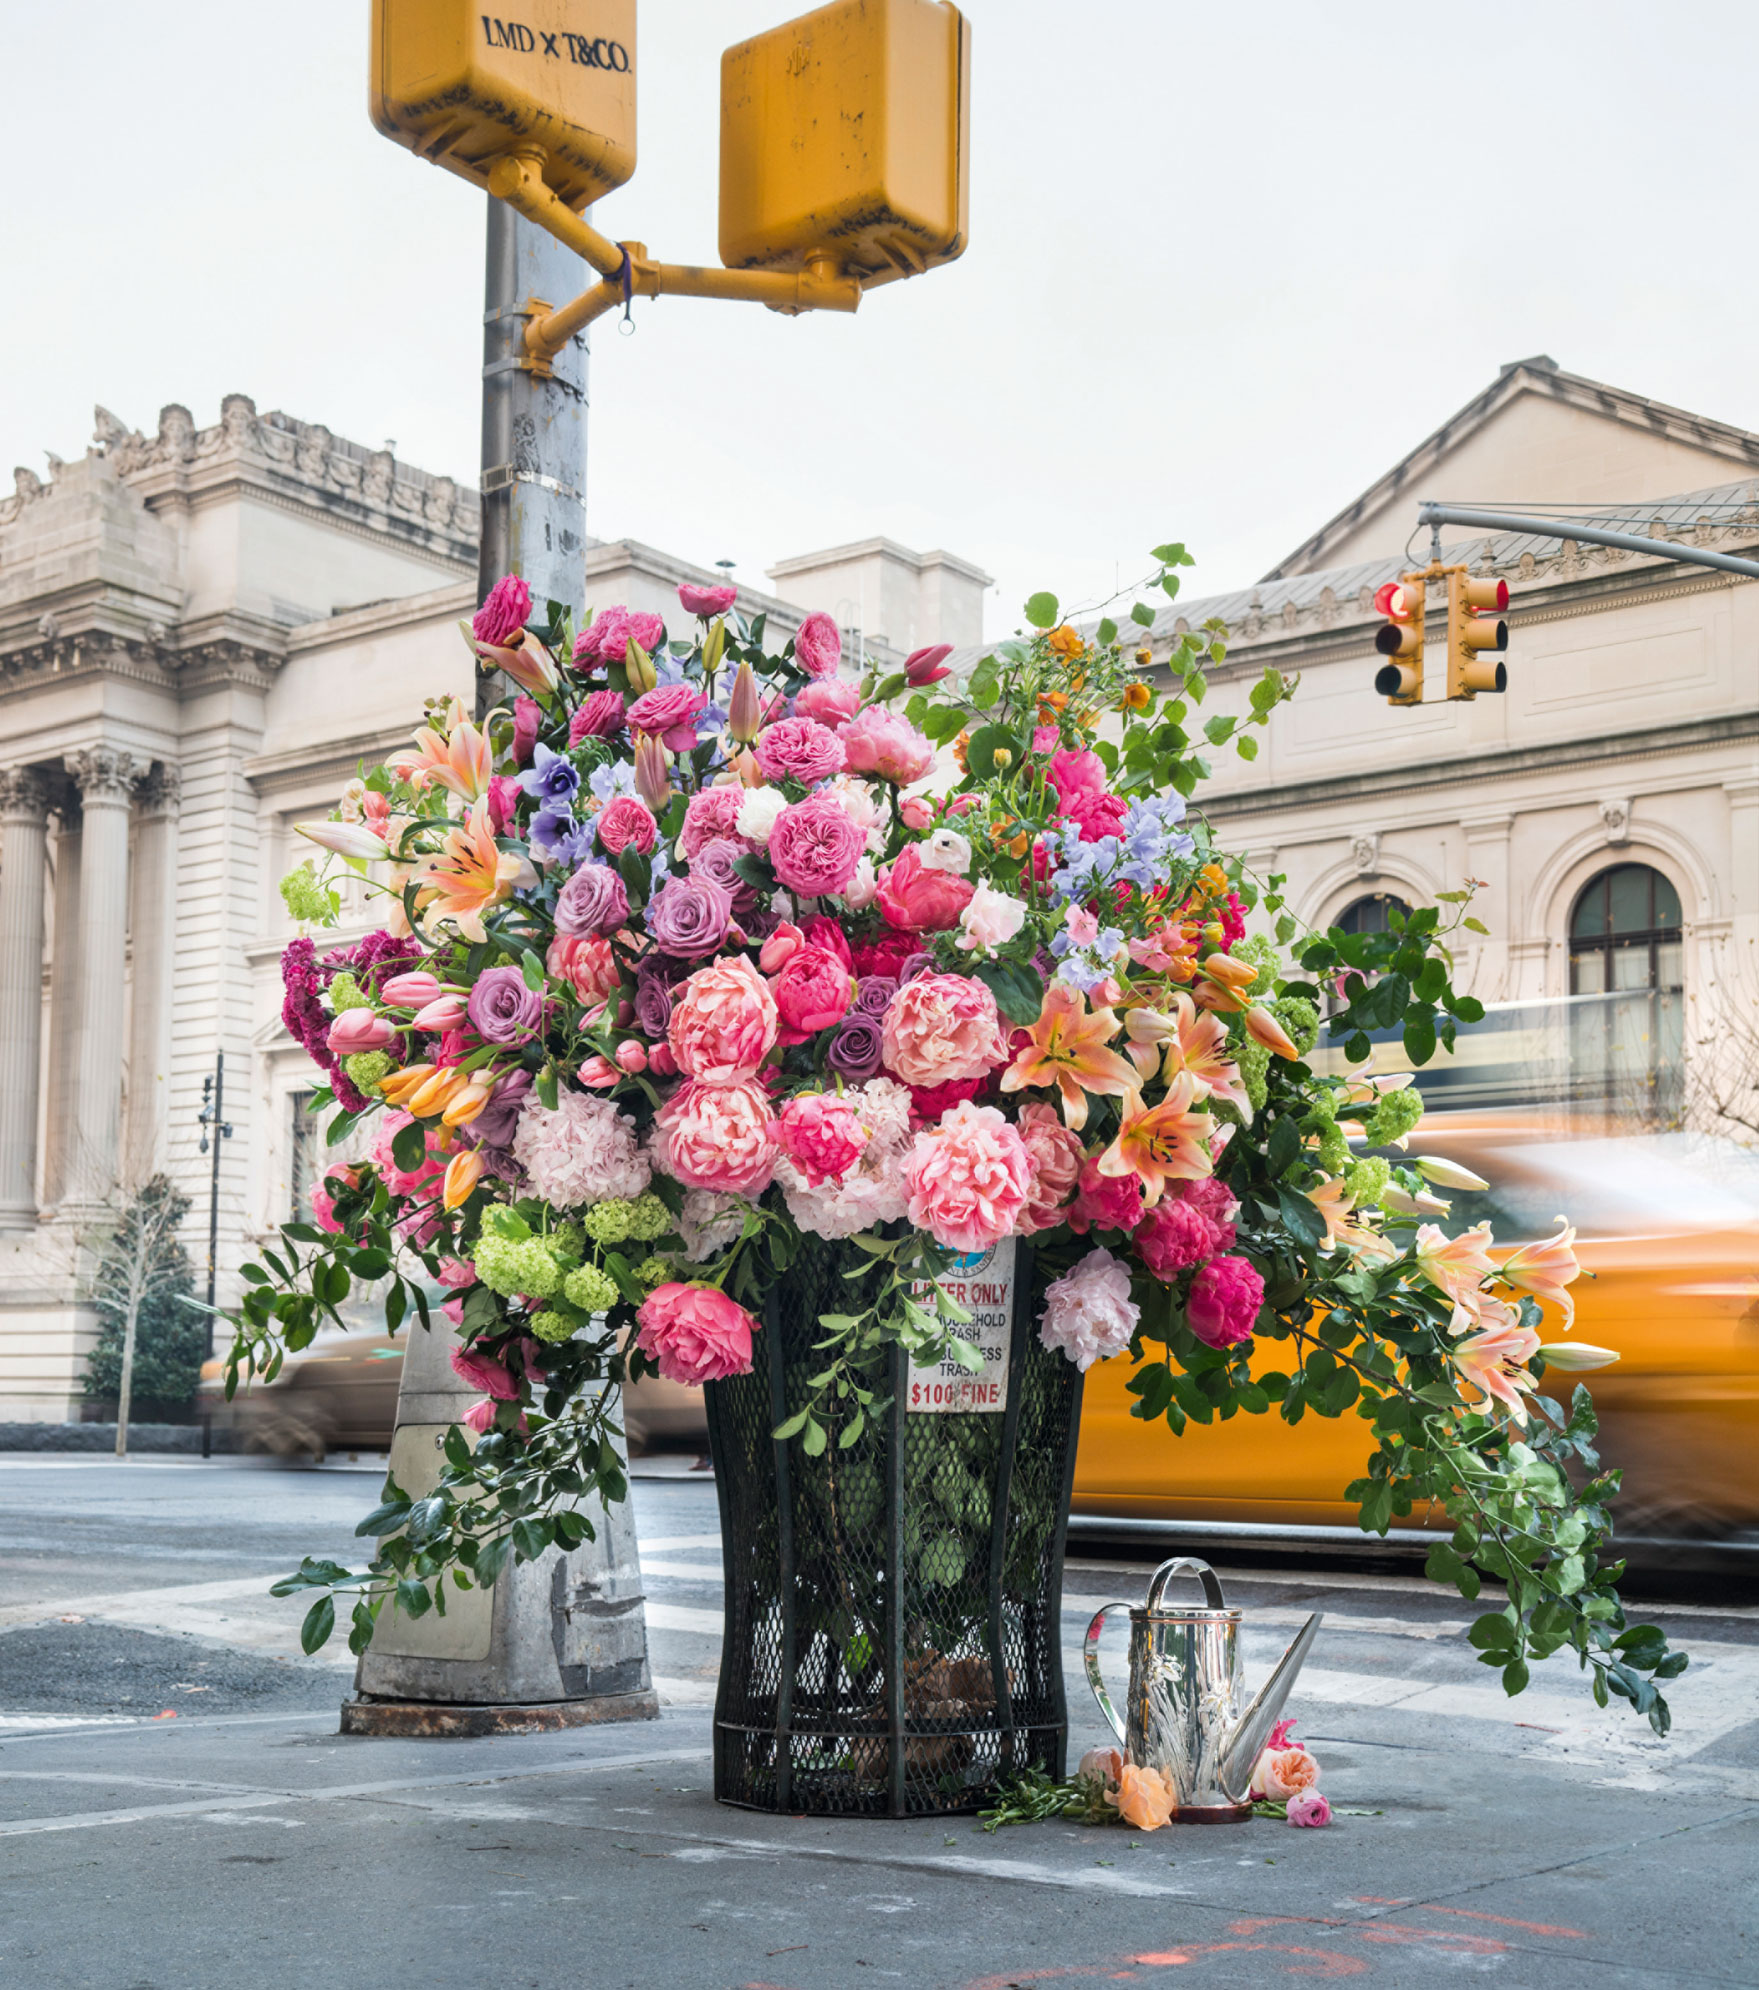 Lewis Miller Design, Flower Flash, 2018. Floral installation, New York. Photo by Raymond Meier